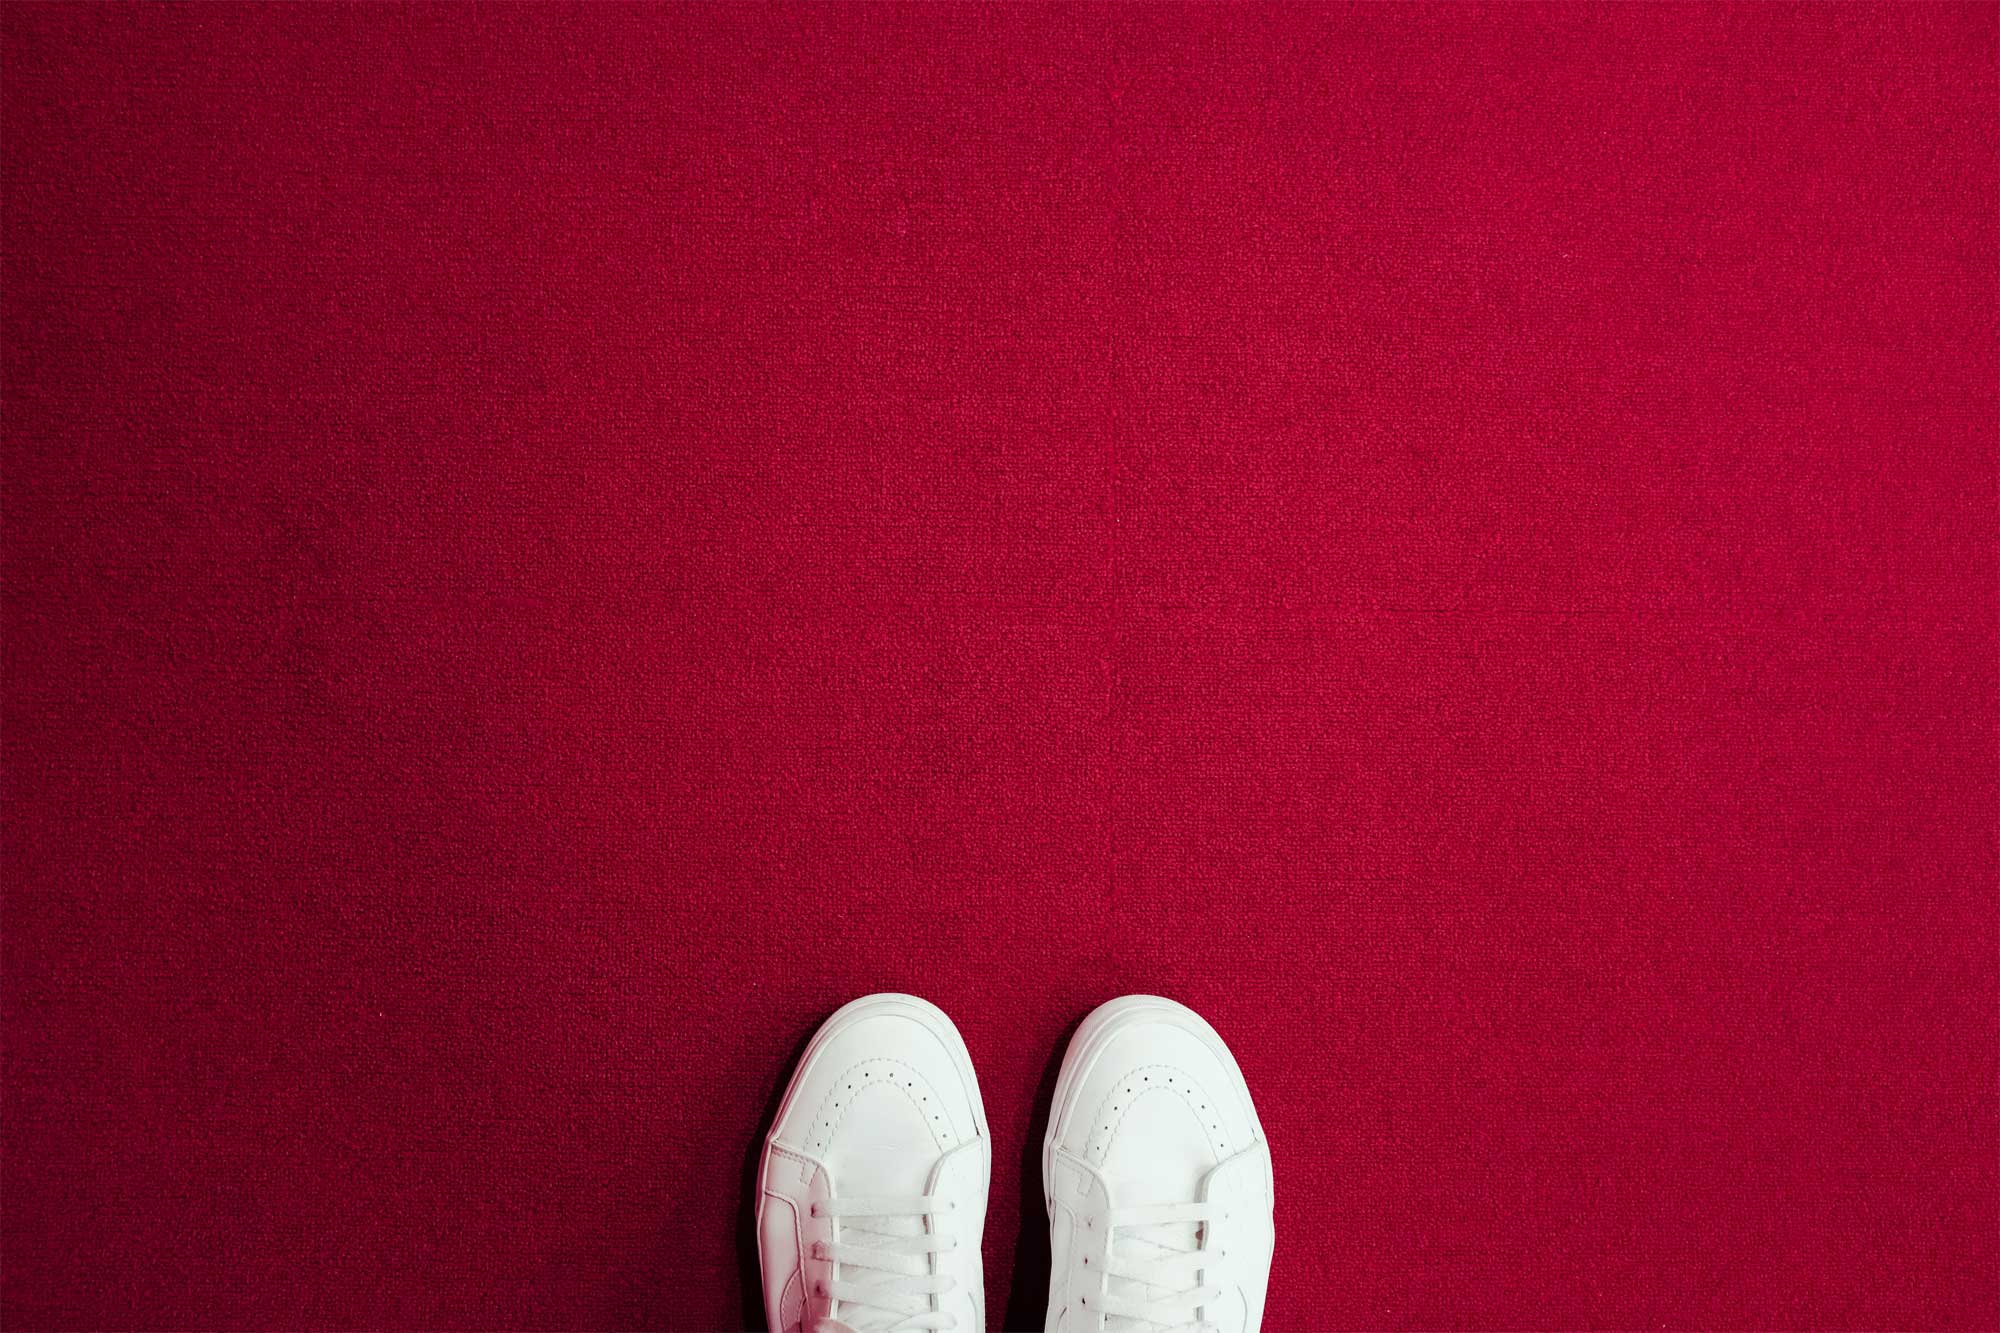 White shoes on a red carpet to suggest starting new freelancing goals